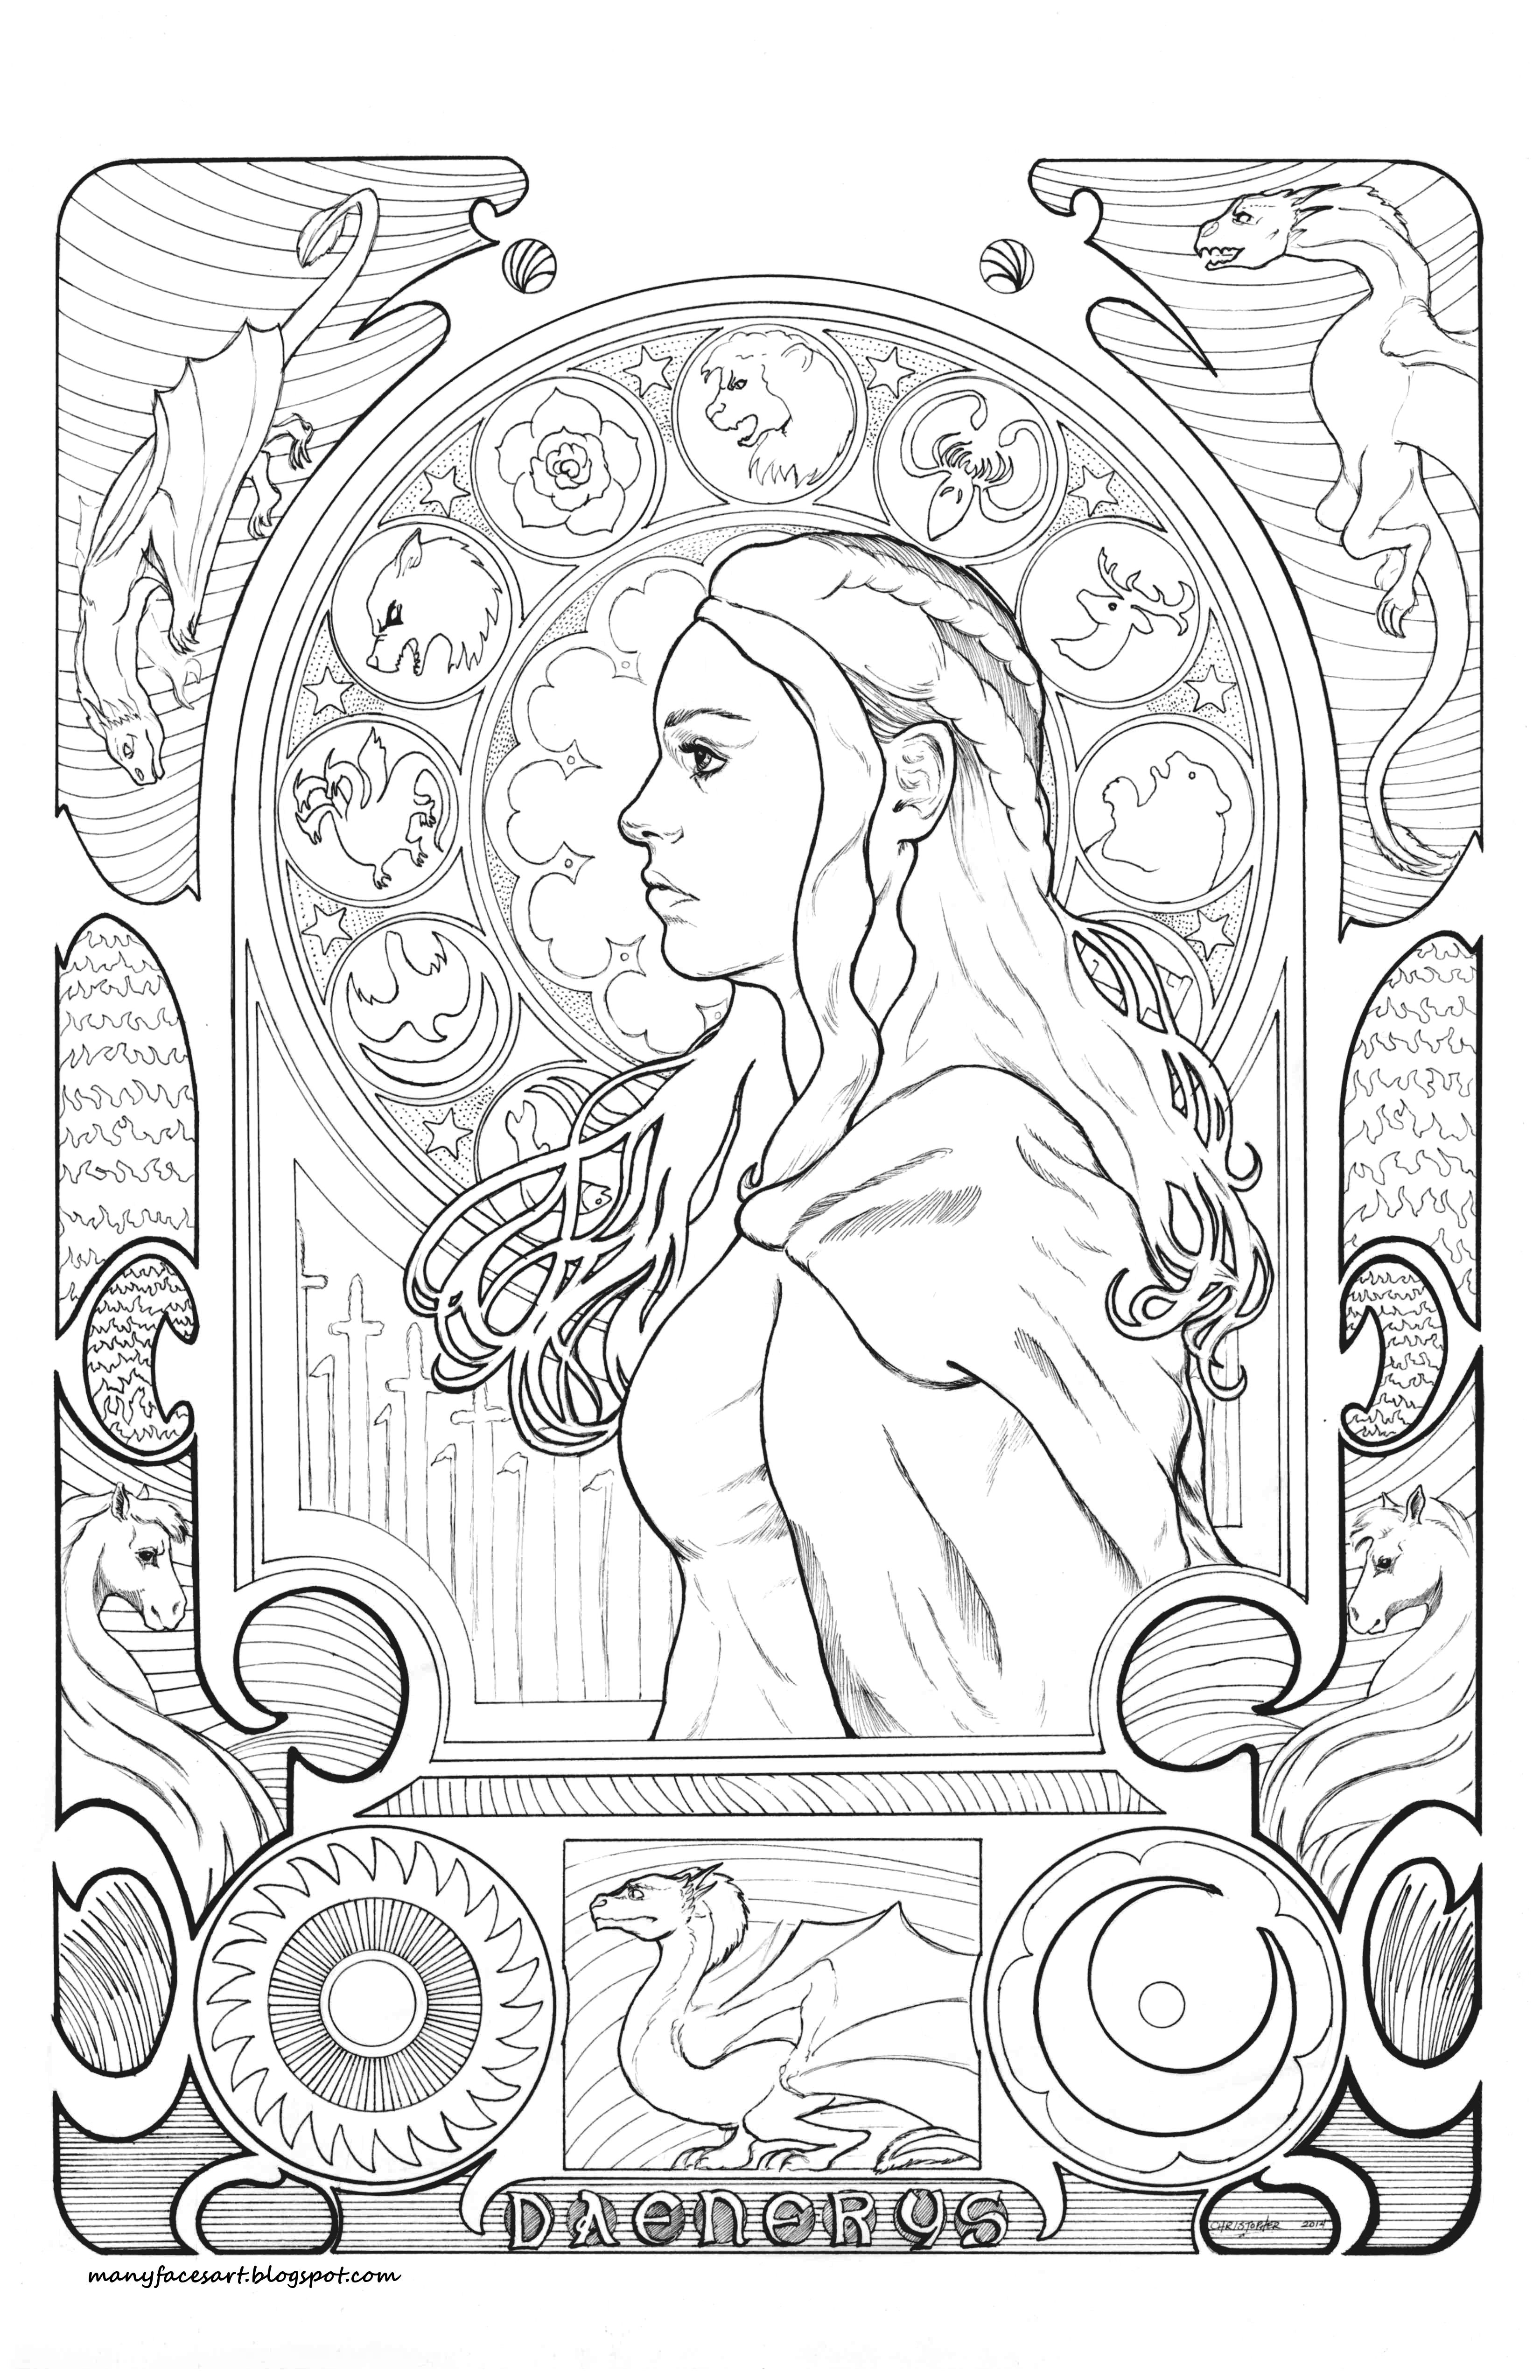 My Art Nouveau/Game of Thrones inspired image of Danaerys